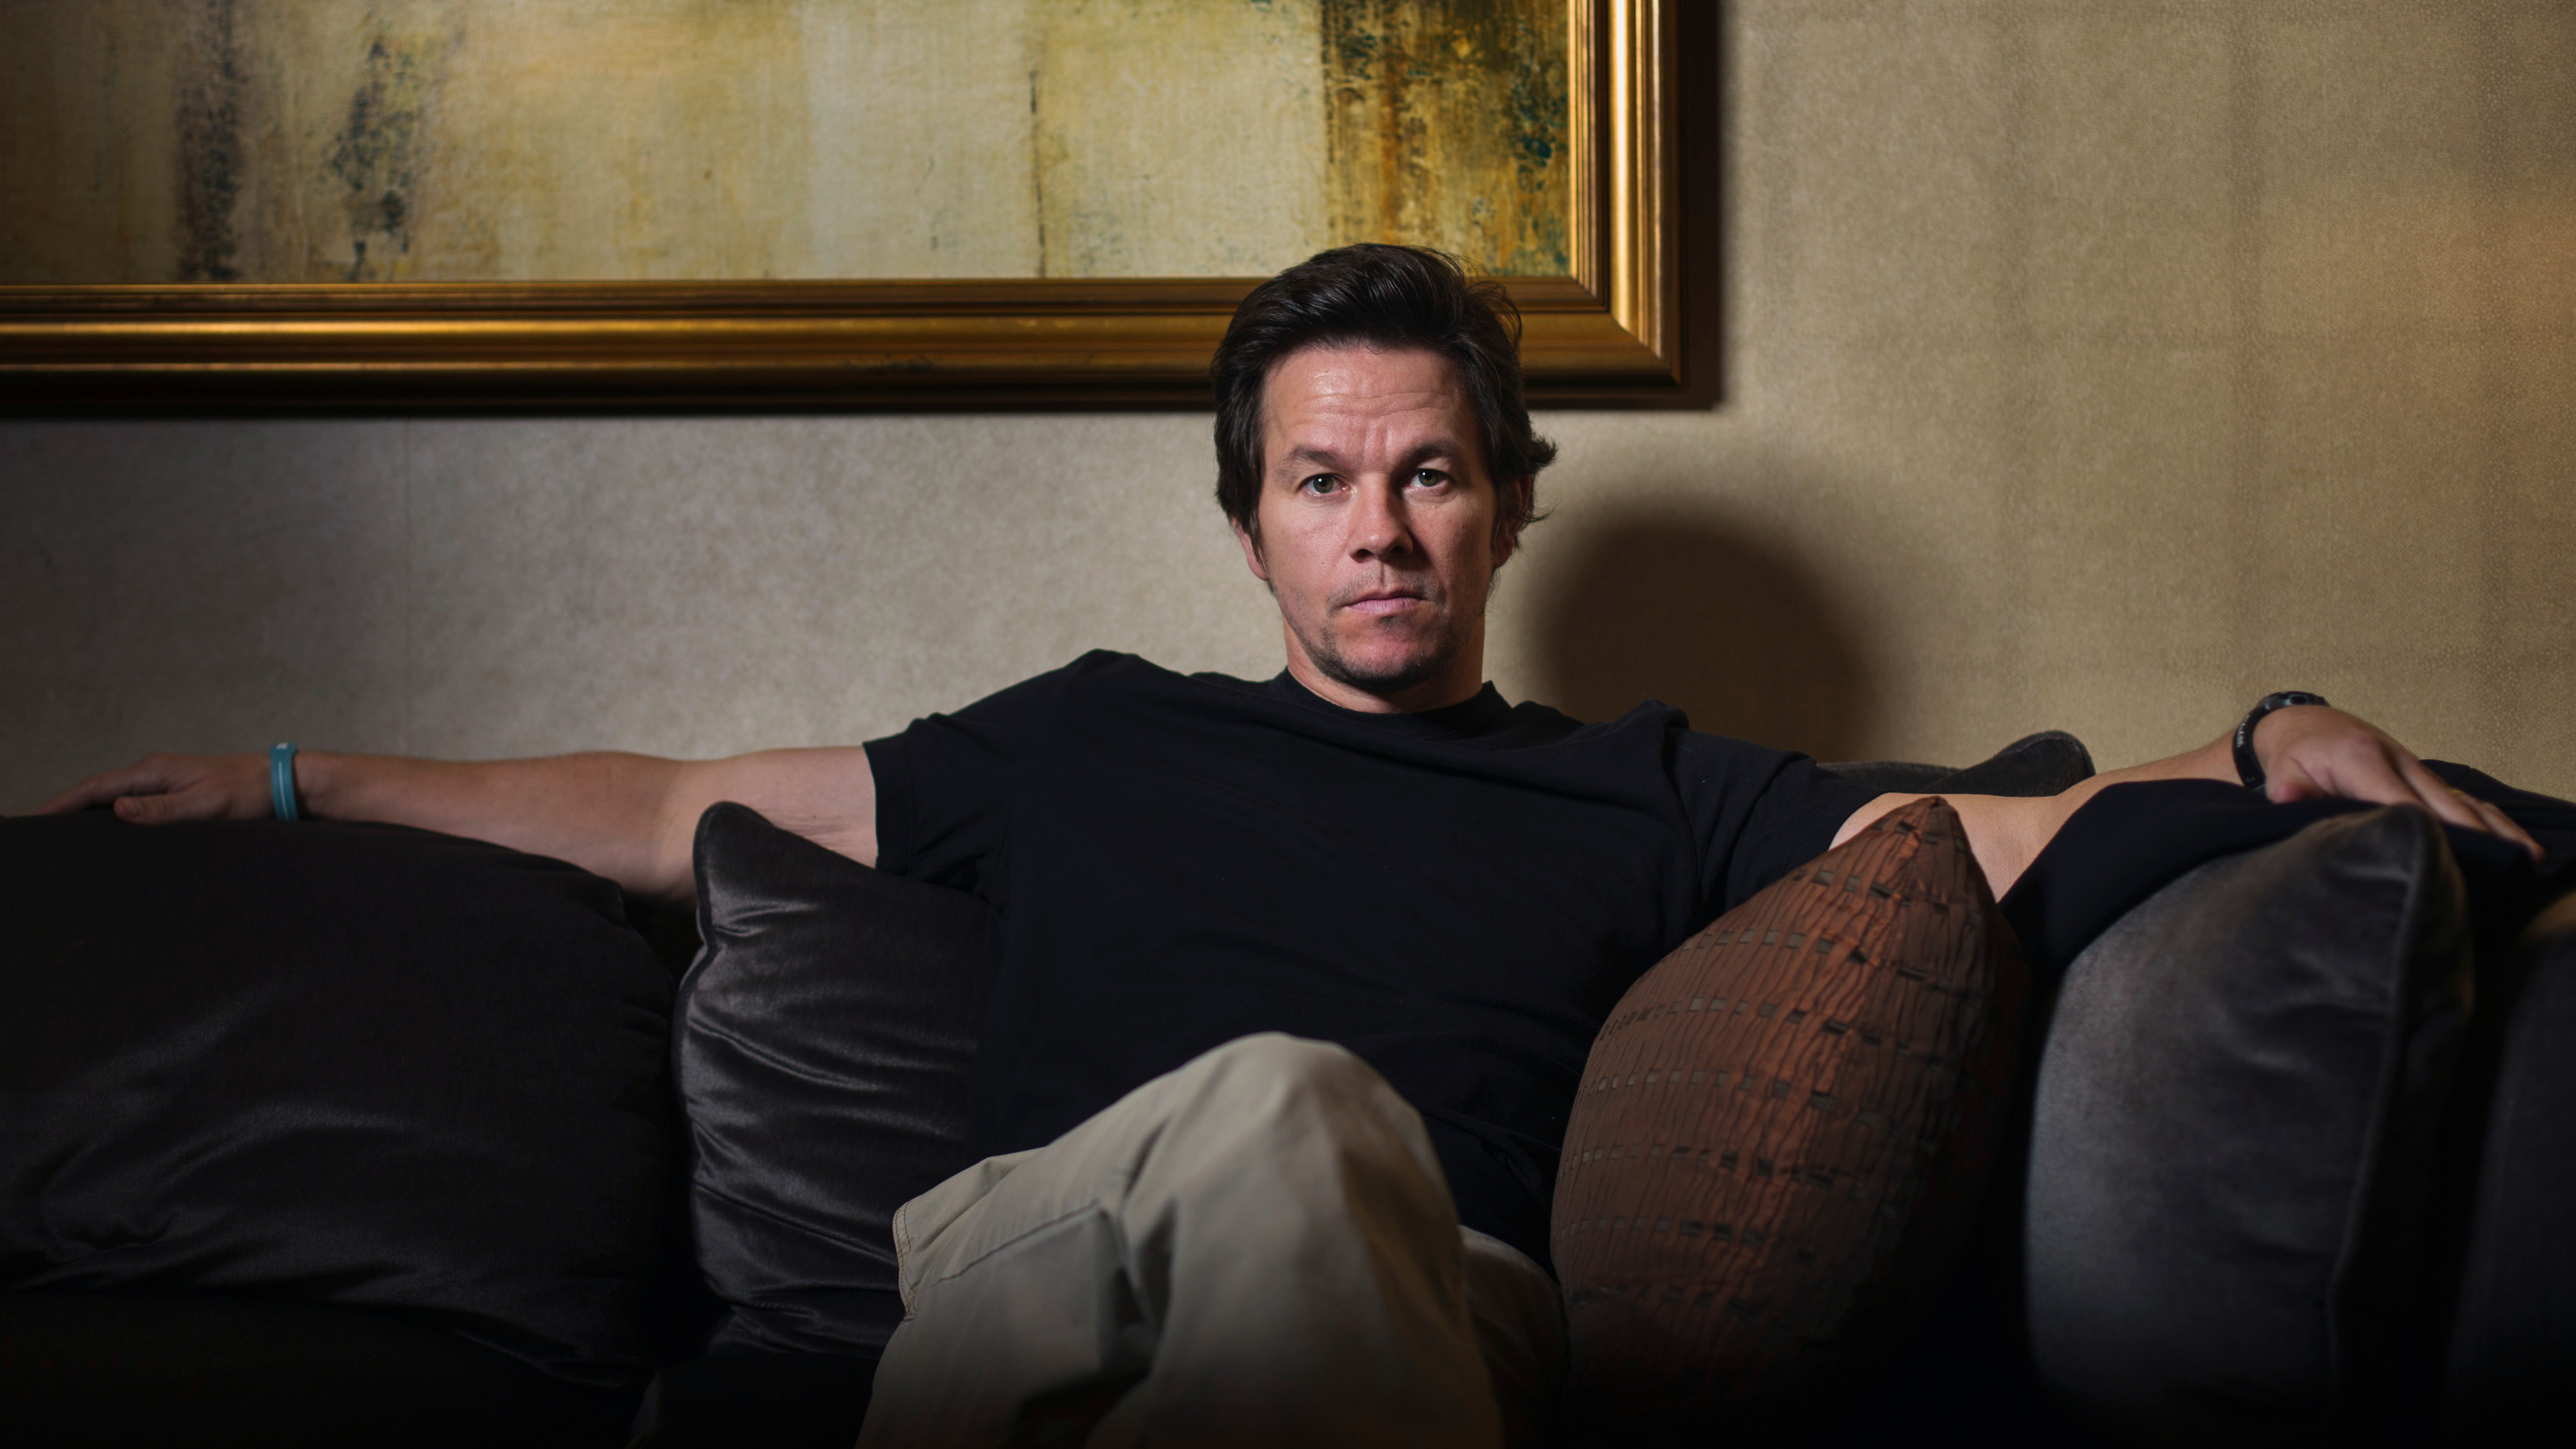 2880x1620 - Mark Wahlberg Wallpapers 3